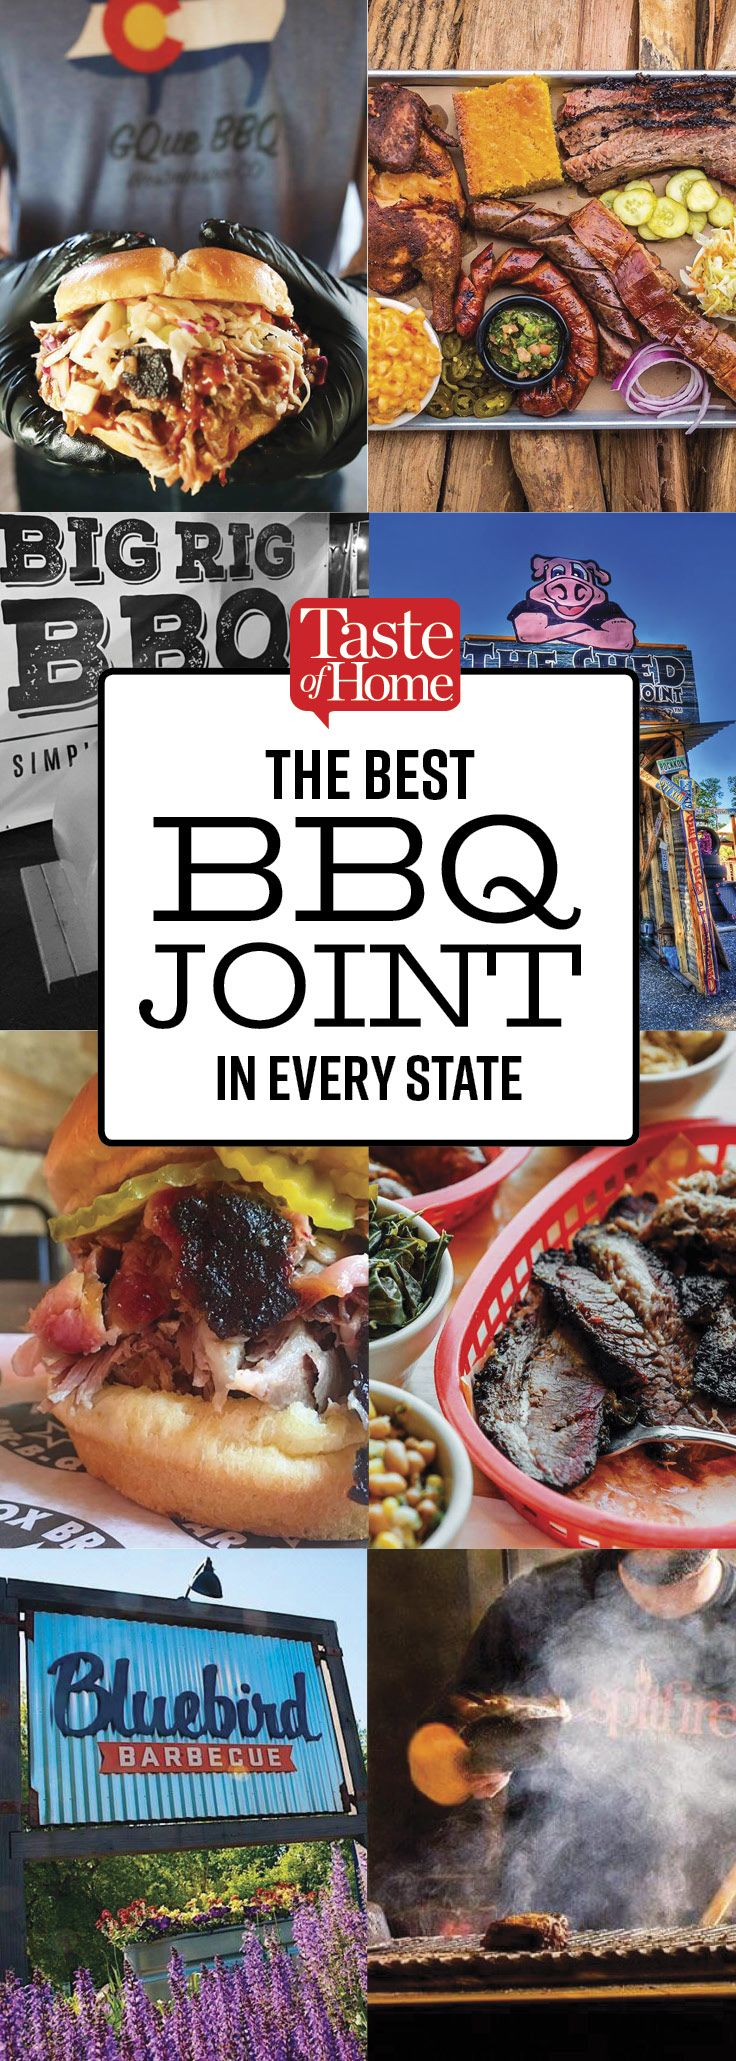 We Found the Best BBQ Joint in Every State